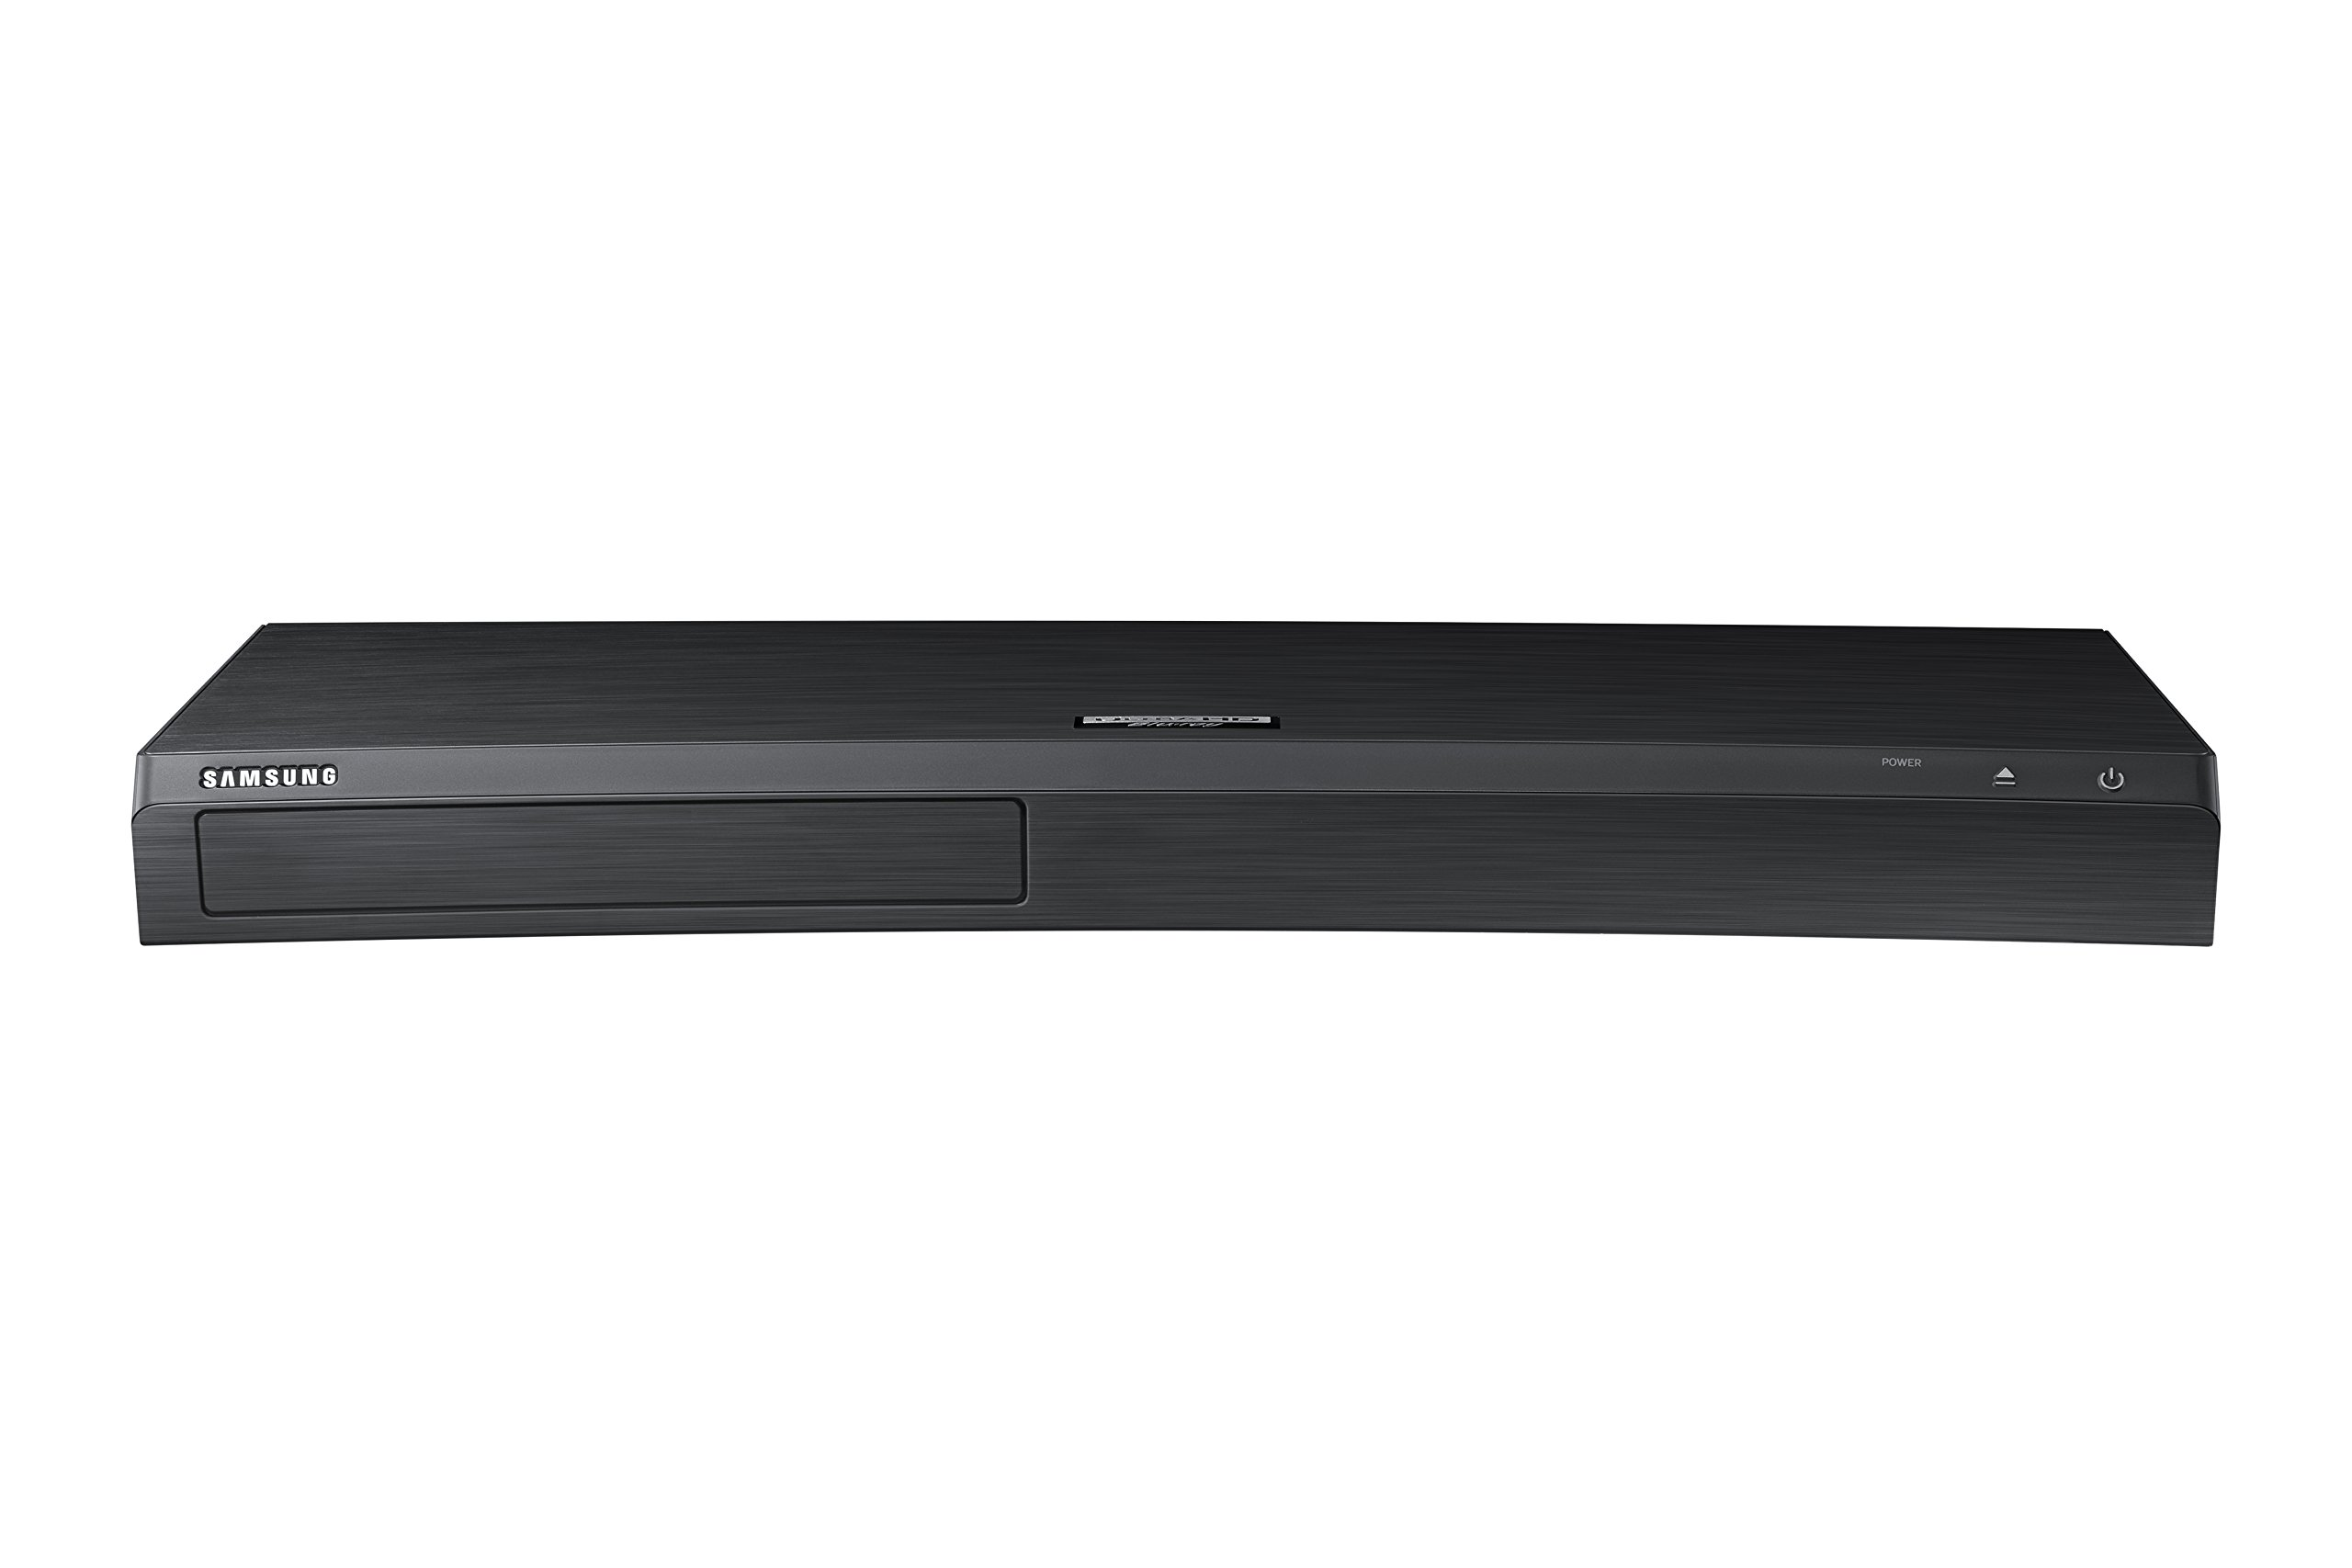 Samsung Electronics UBD-M9500/ZA Curved Blu-Ray Player, Black titanium (2017) by Samsung